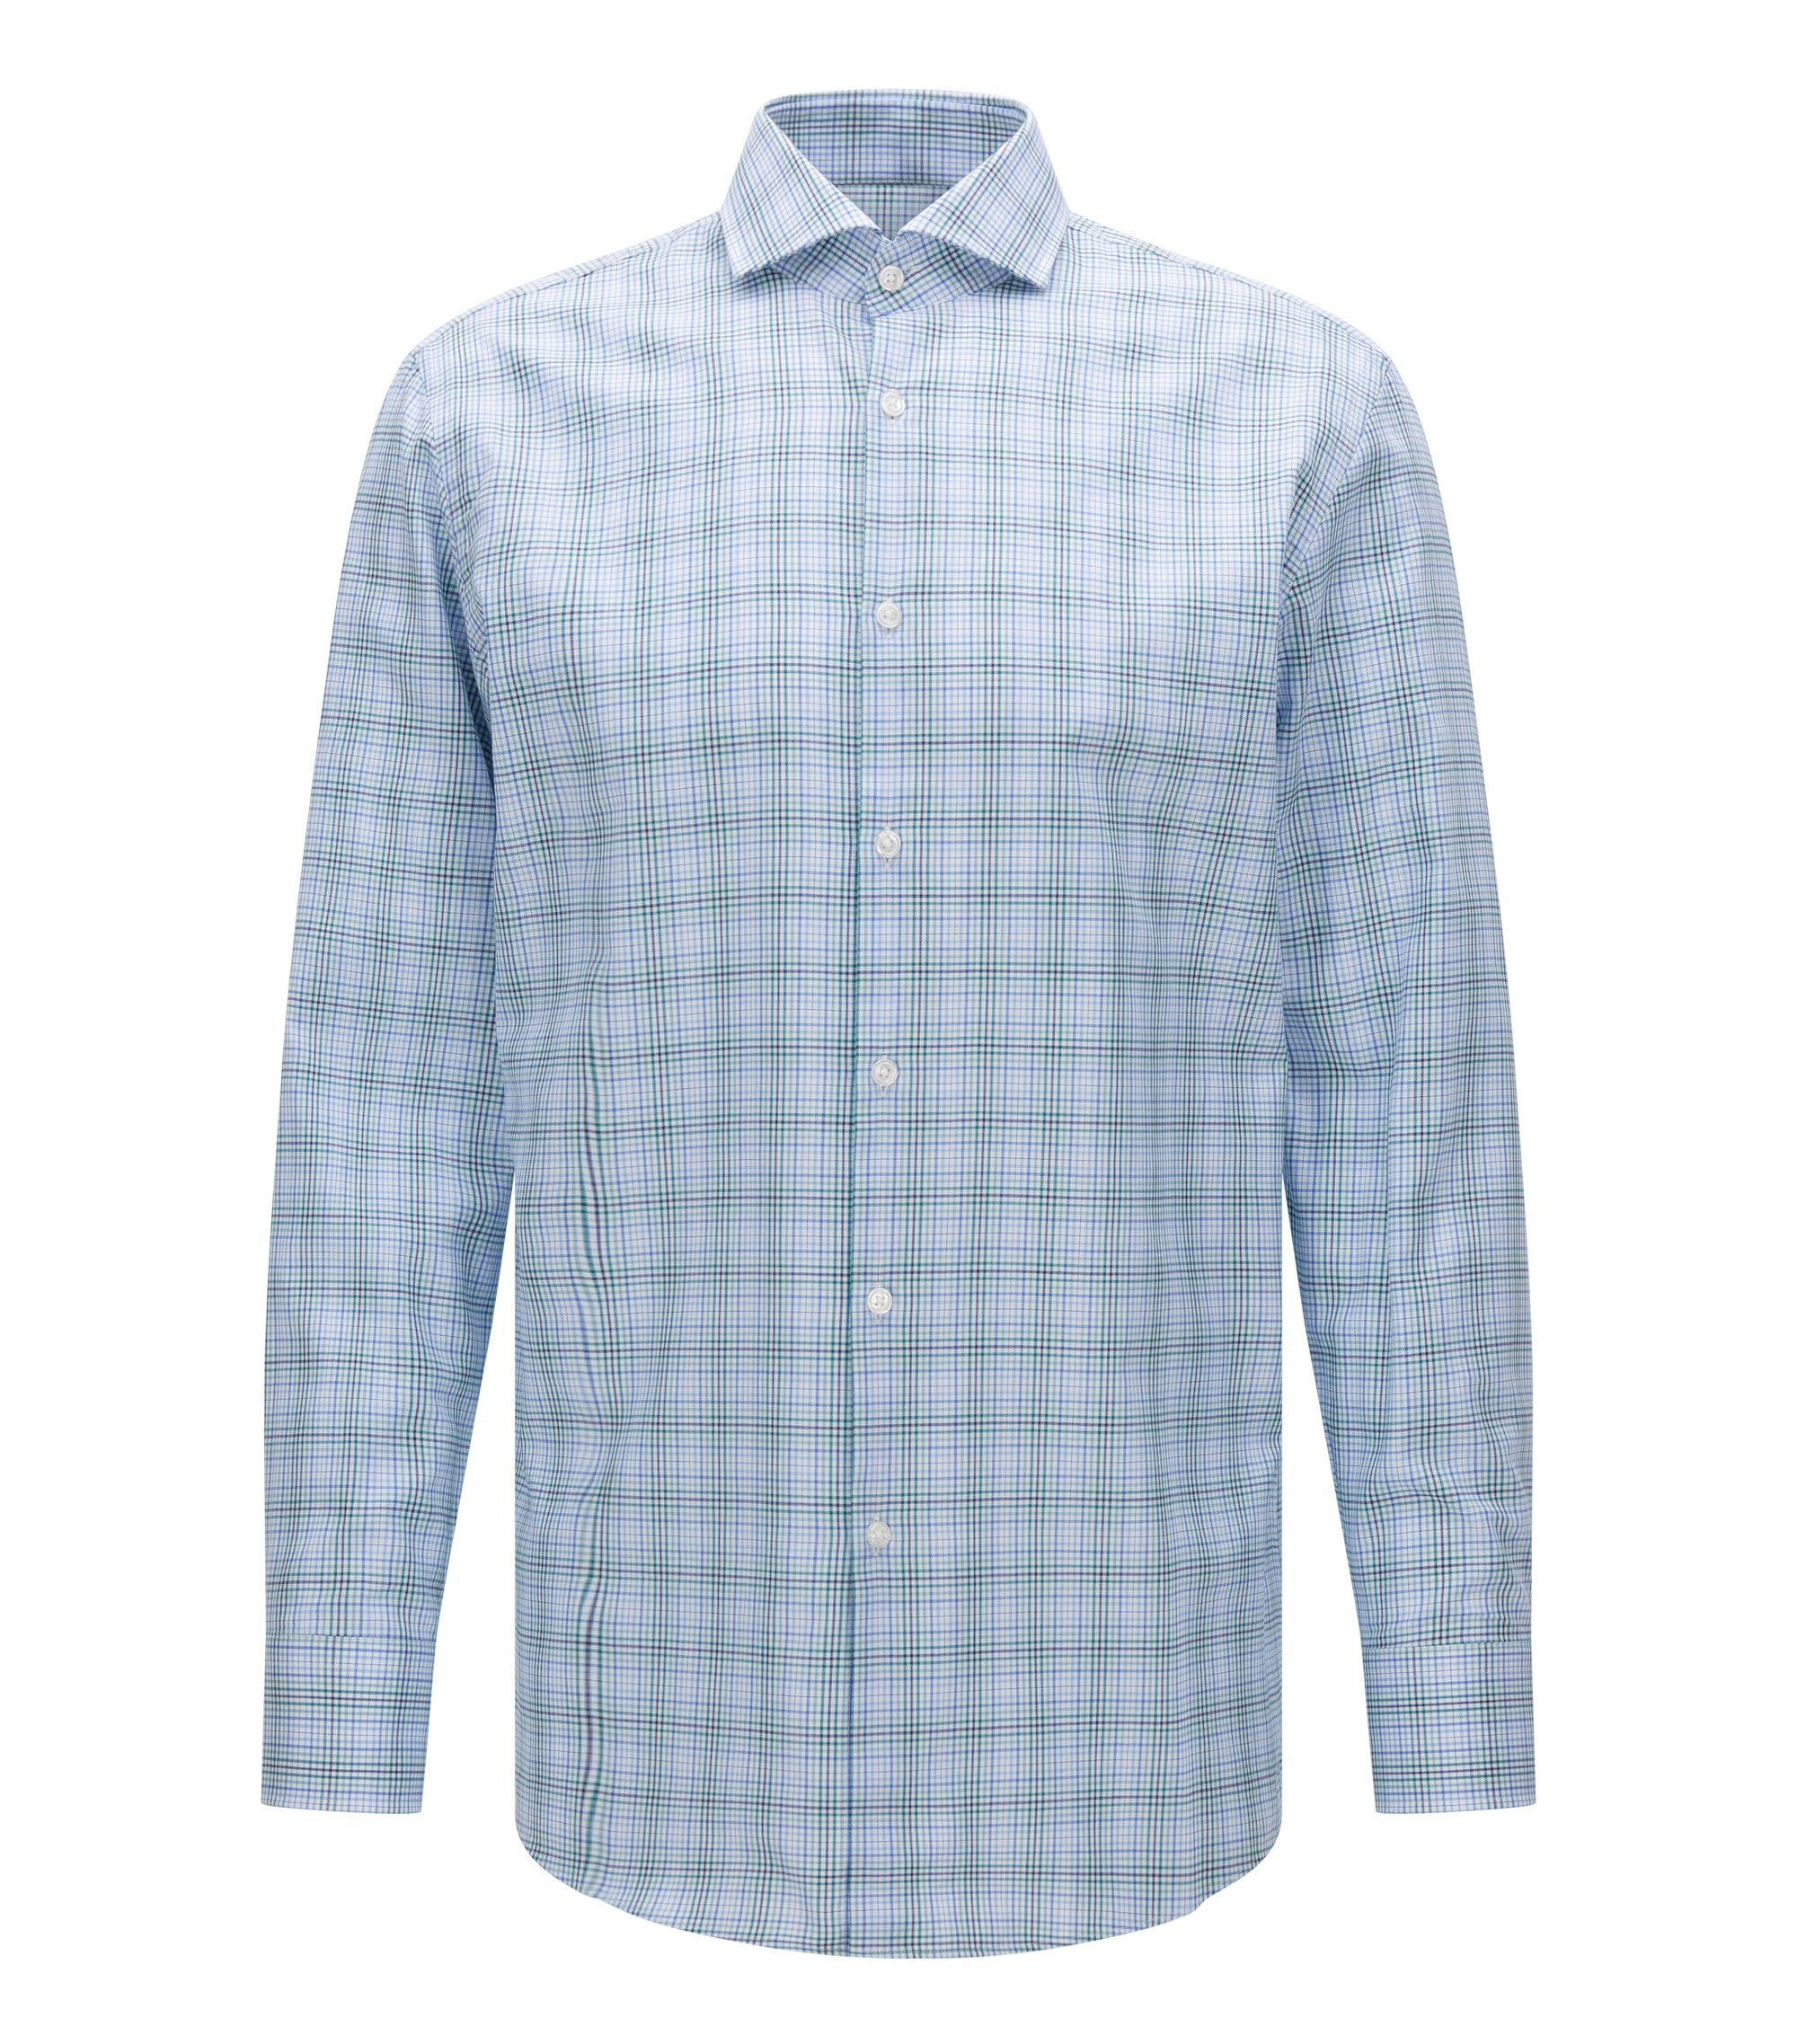 Plaid Cotton Dress Shirt, Sharp Fit | Mark US, Green